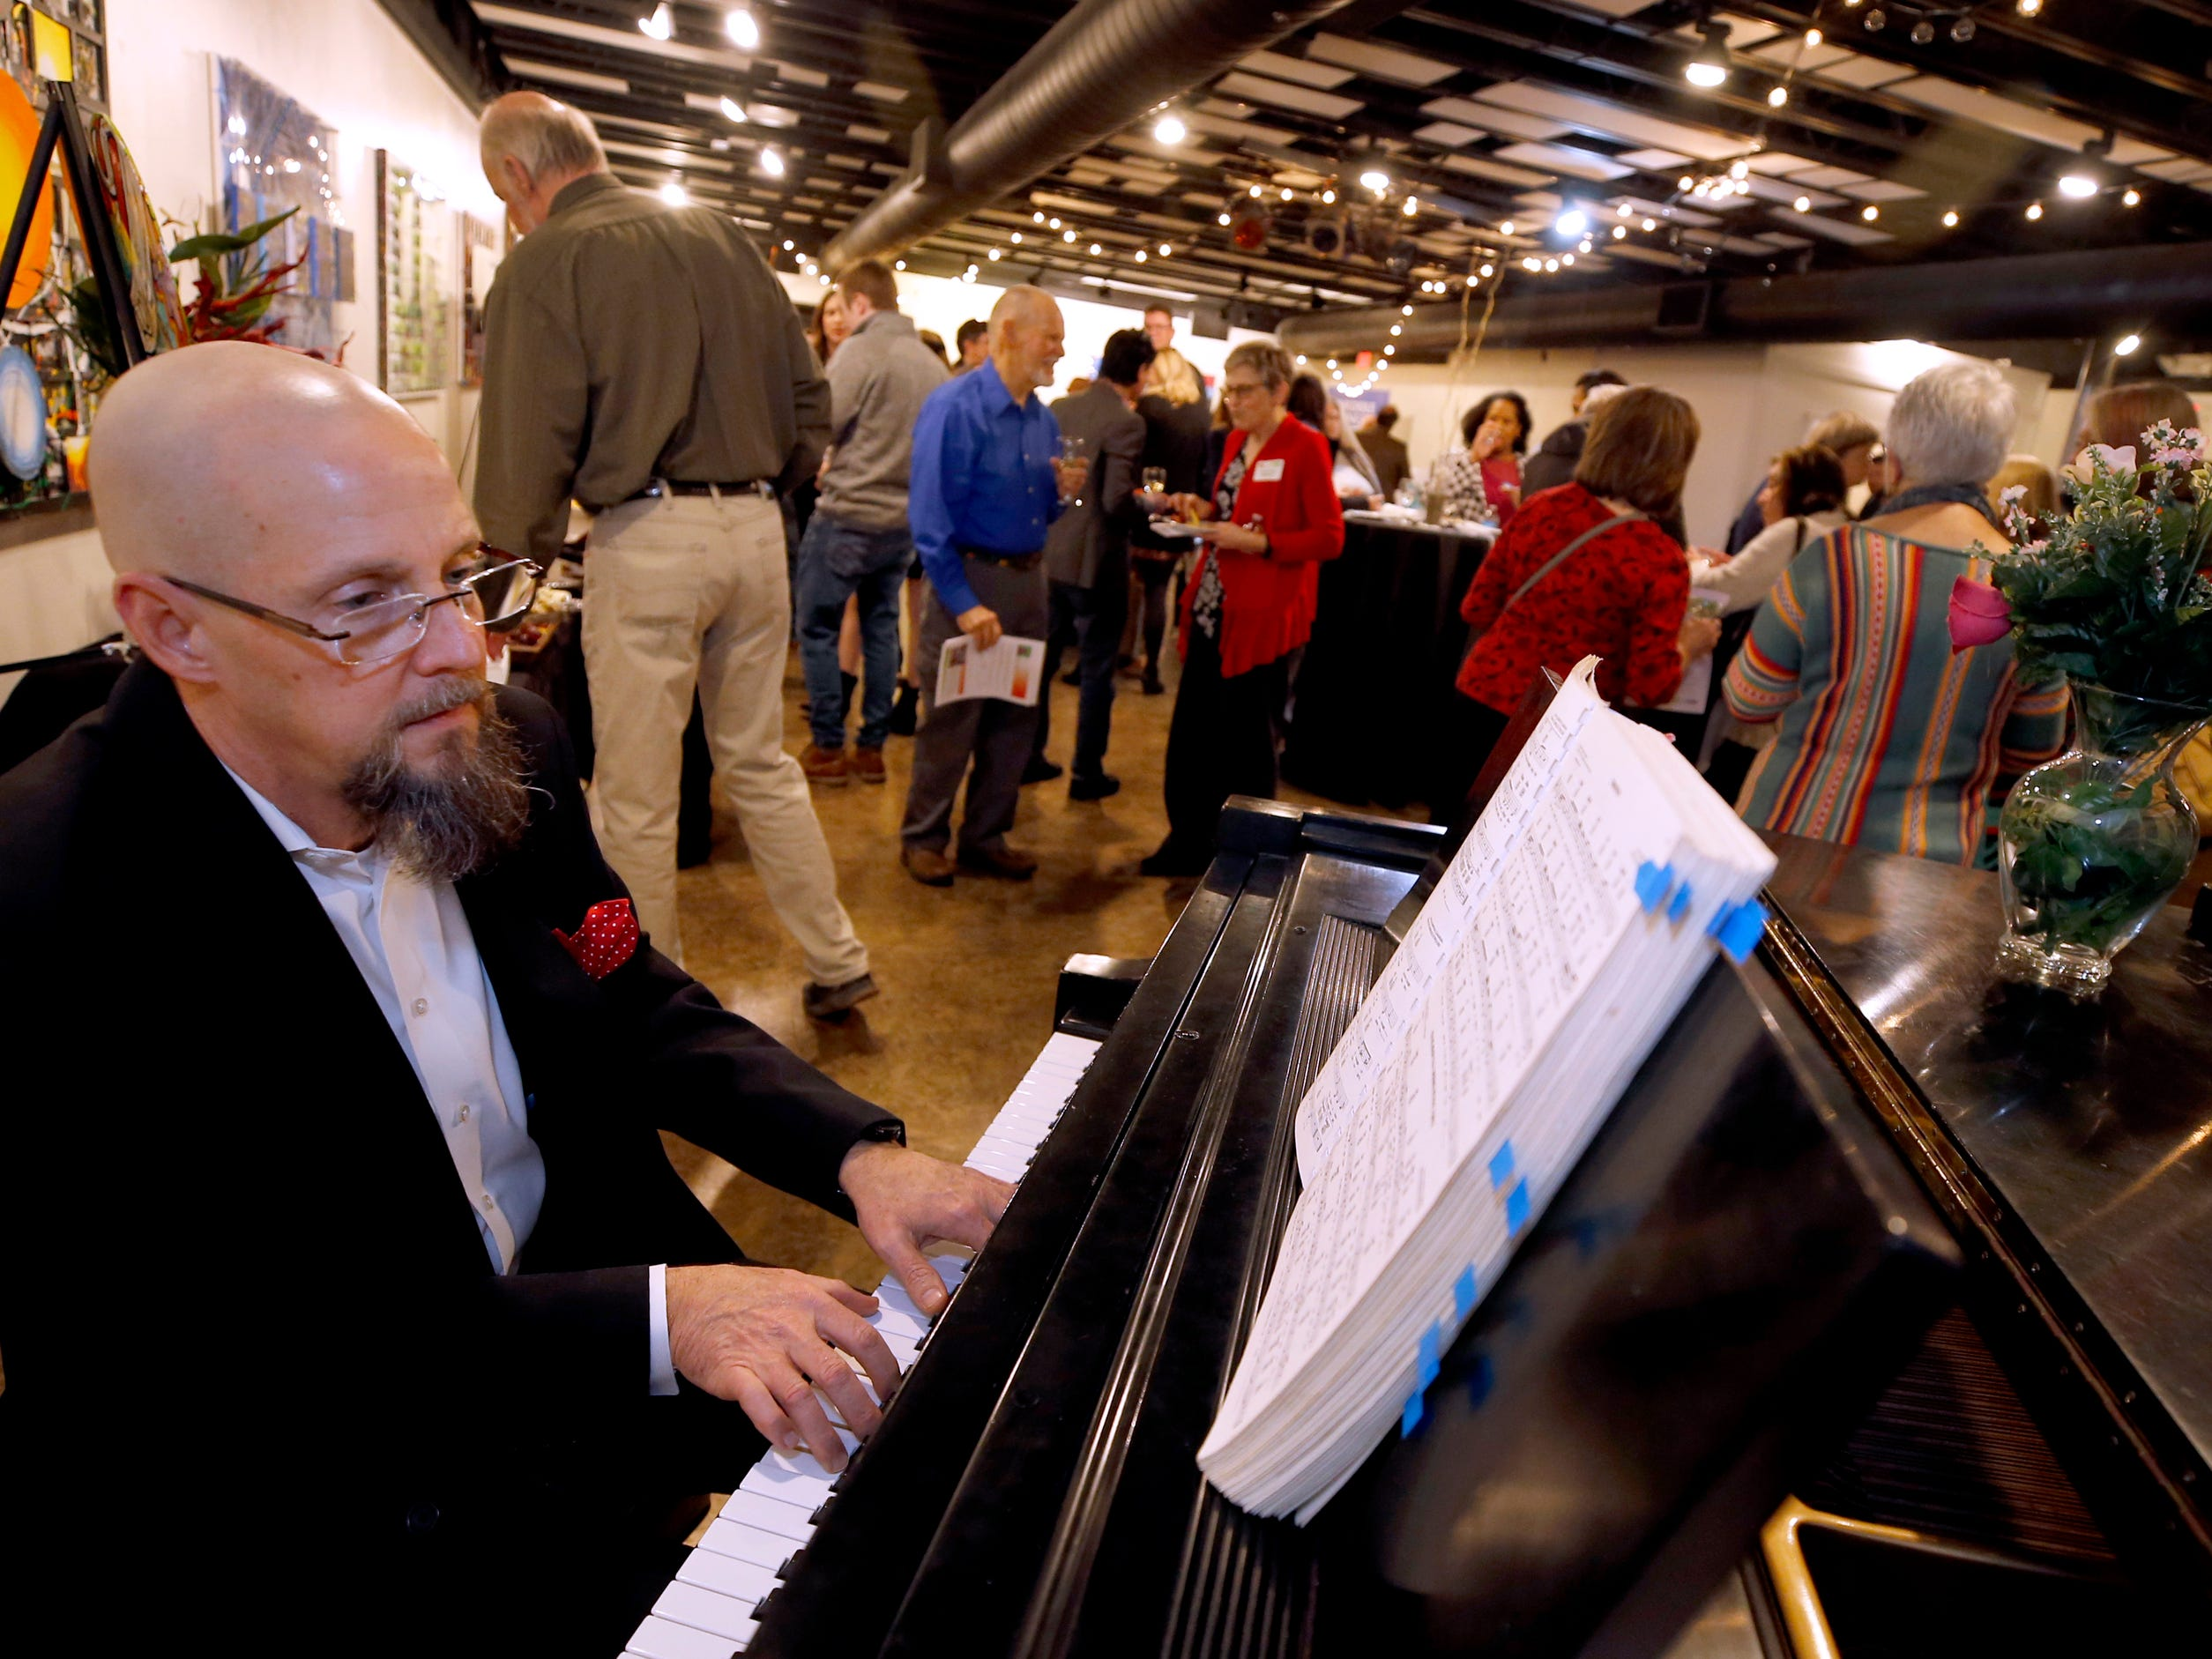 Royce Phillips plays a variety of songs during an arts reception for Rutherford Arts Alliance that was held at the Center for the Arts on Wednesday Jan. 9, 2019.